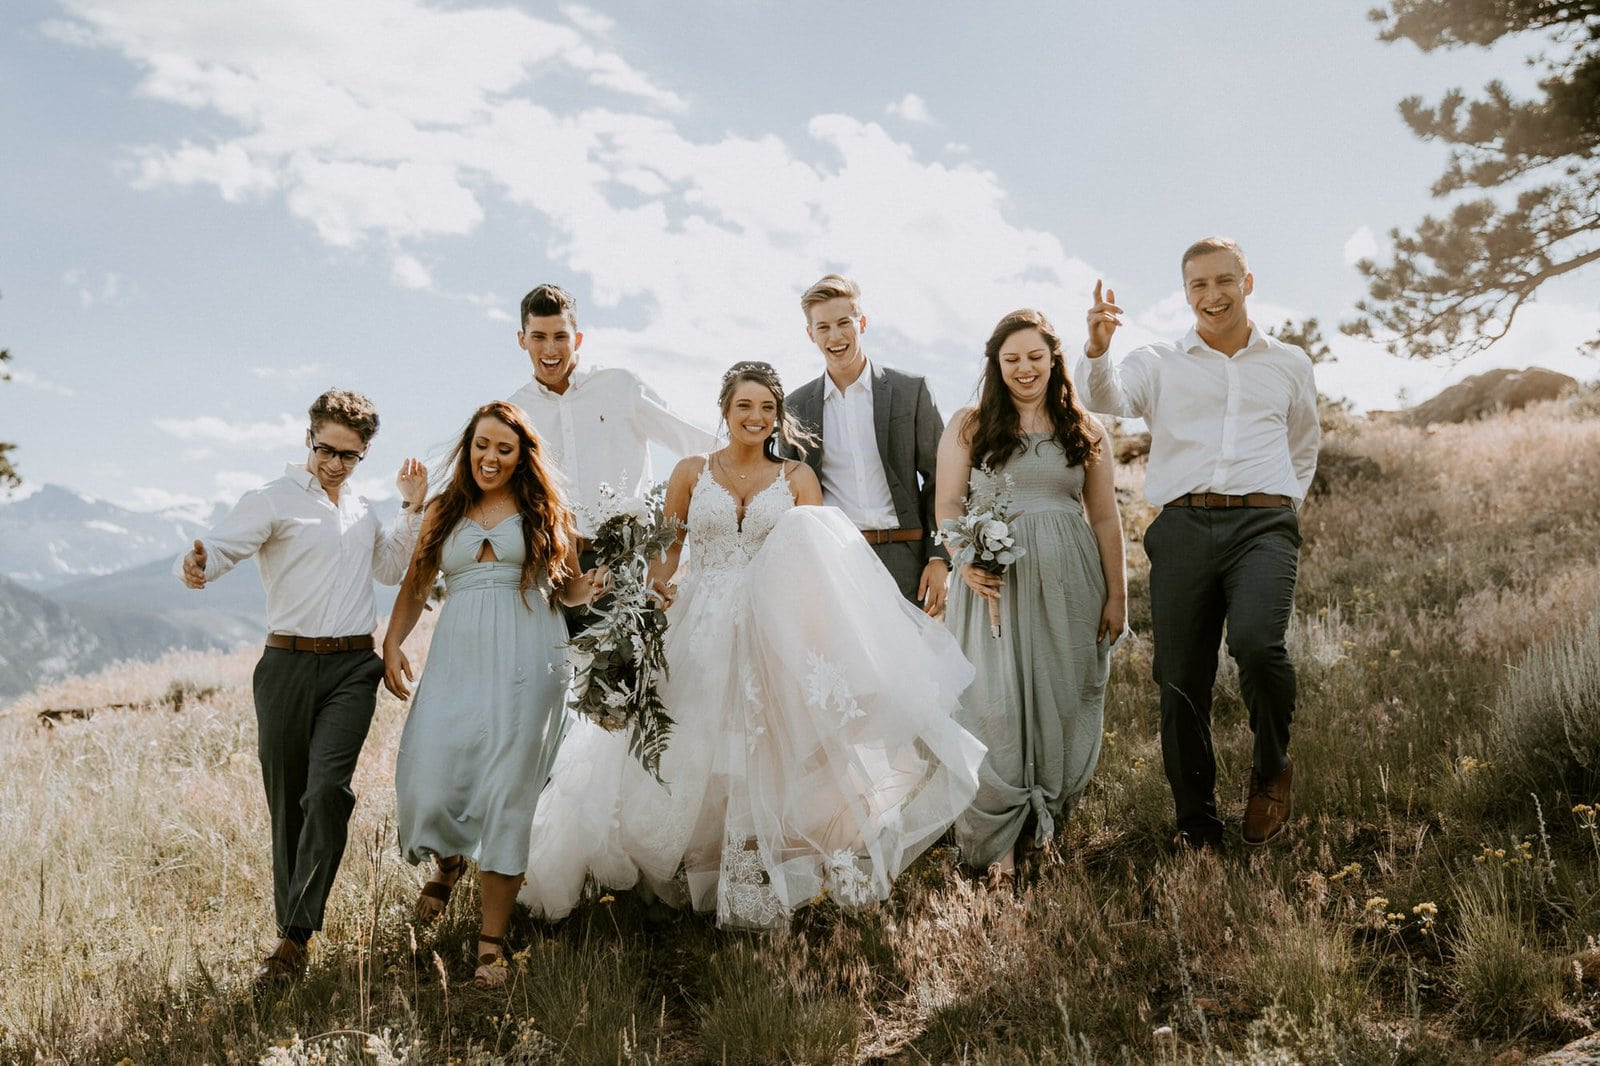 Bridal party at Rocky Mountain National Park.